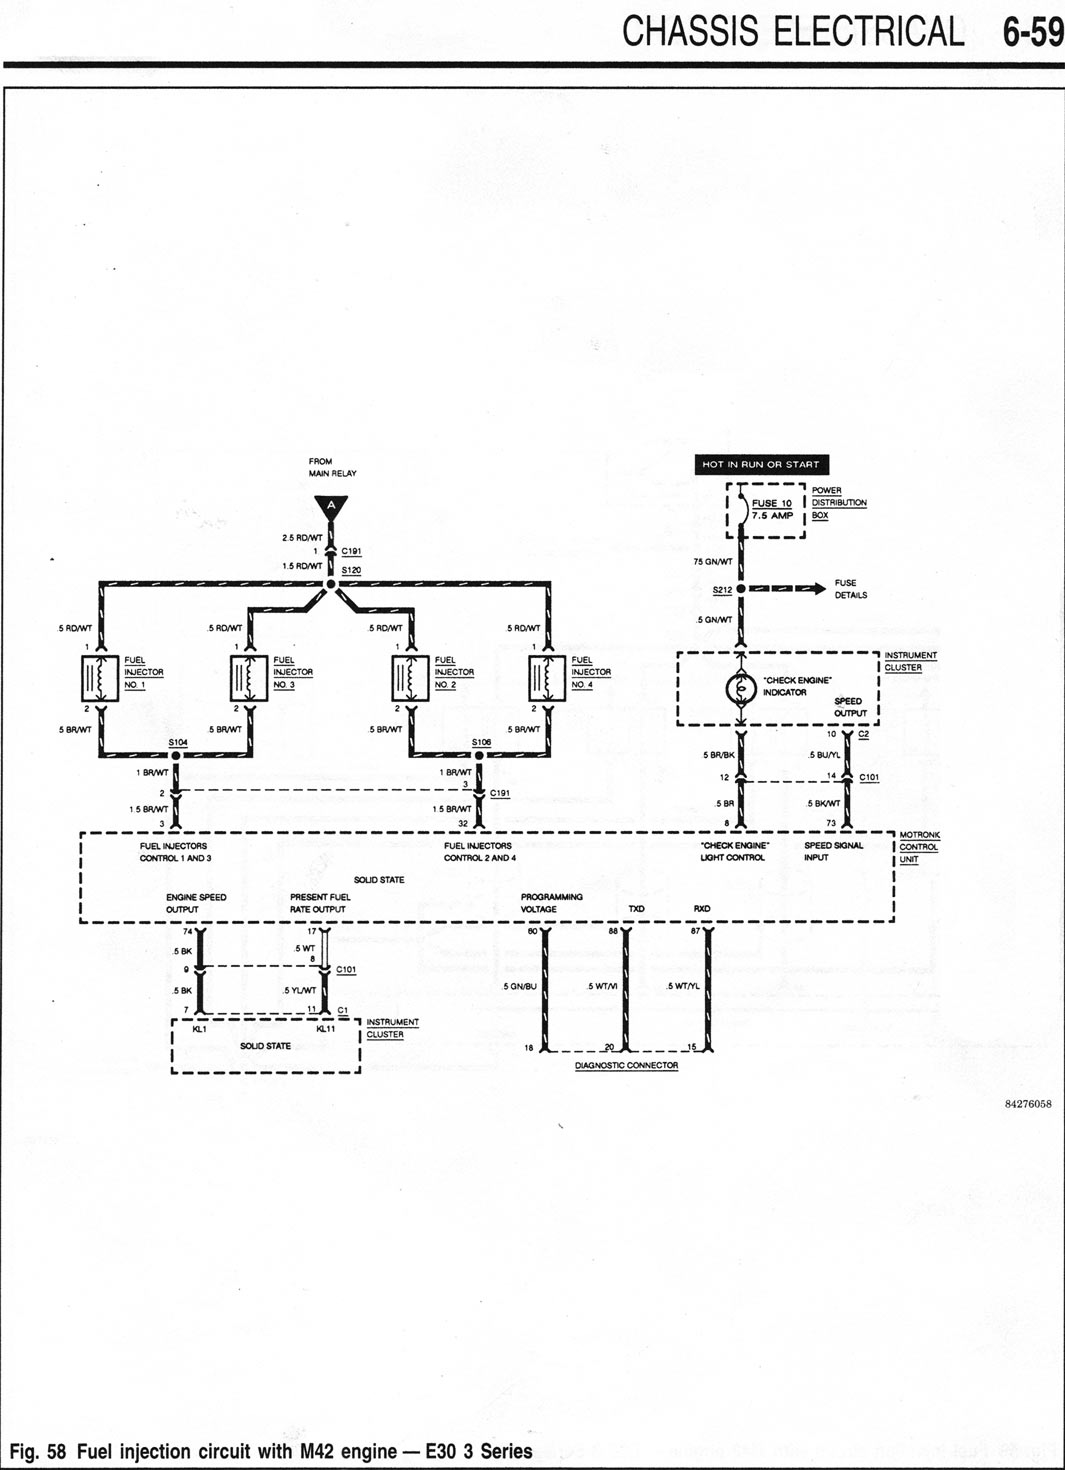 bmw m50 wiring diagram 2003 yamaha warrior 350 e36 diagrams get free image about